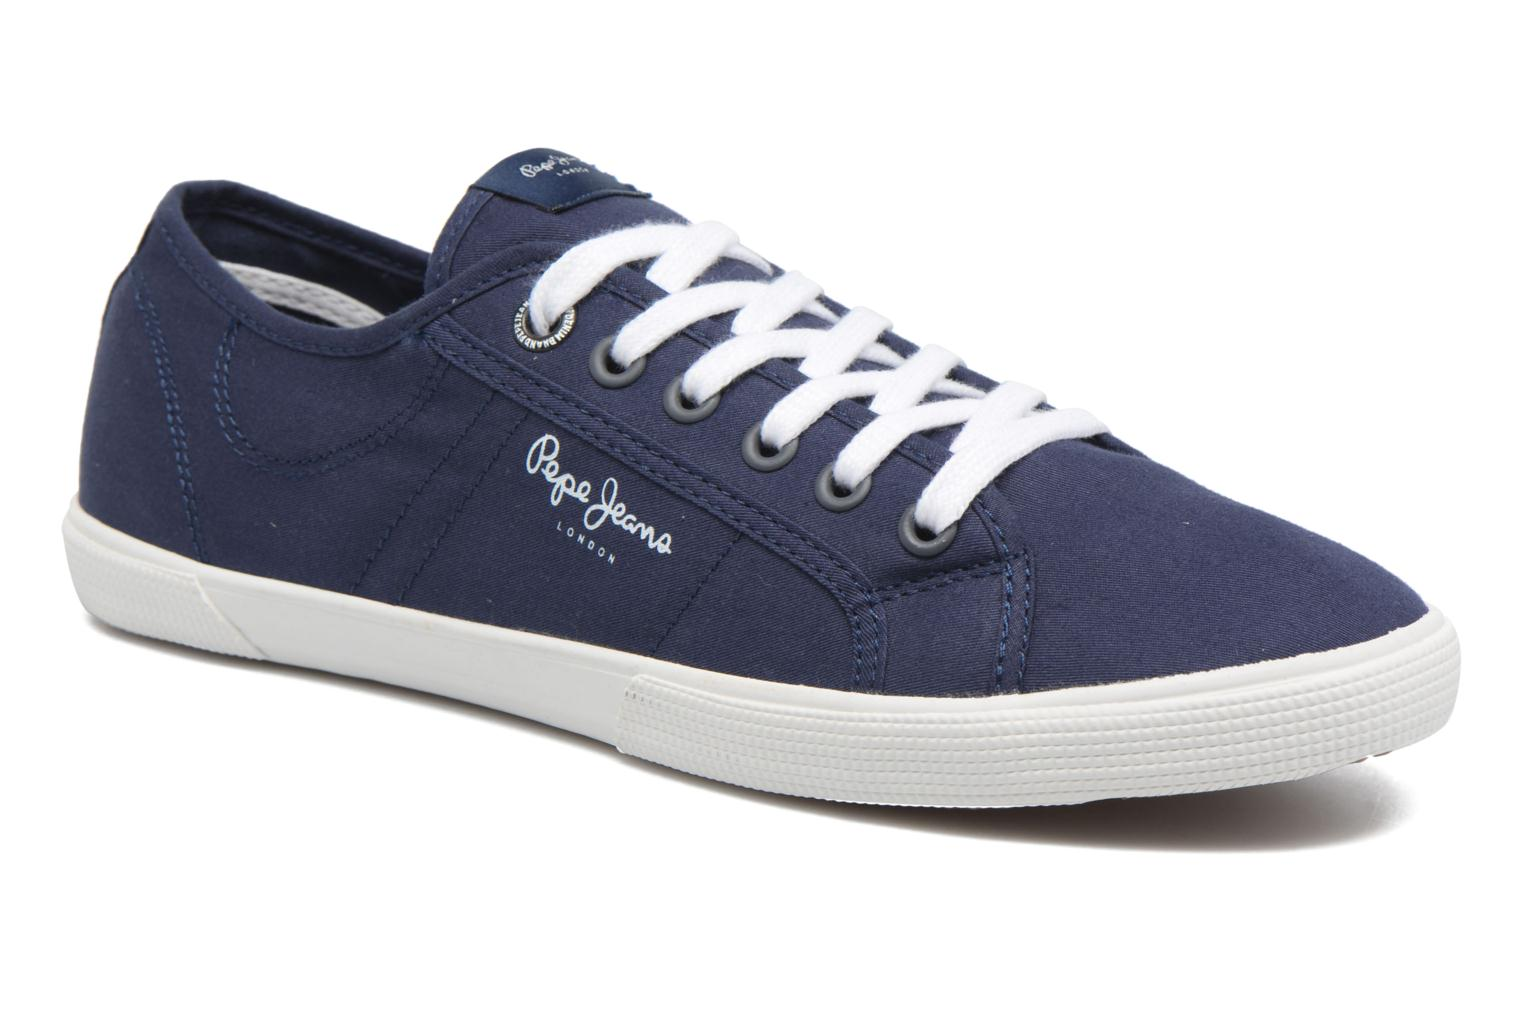 Marques Chaussure homme Pepe jeans homme Aberman 2.1 Sailor